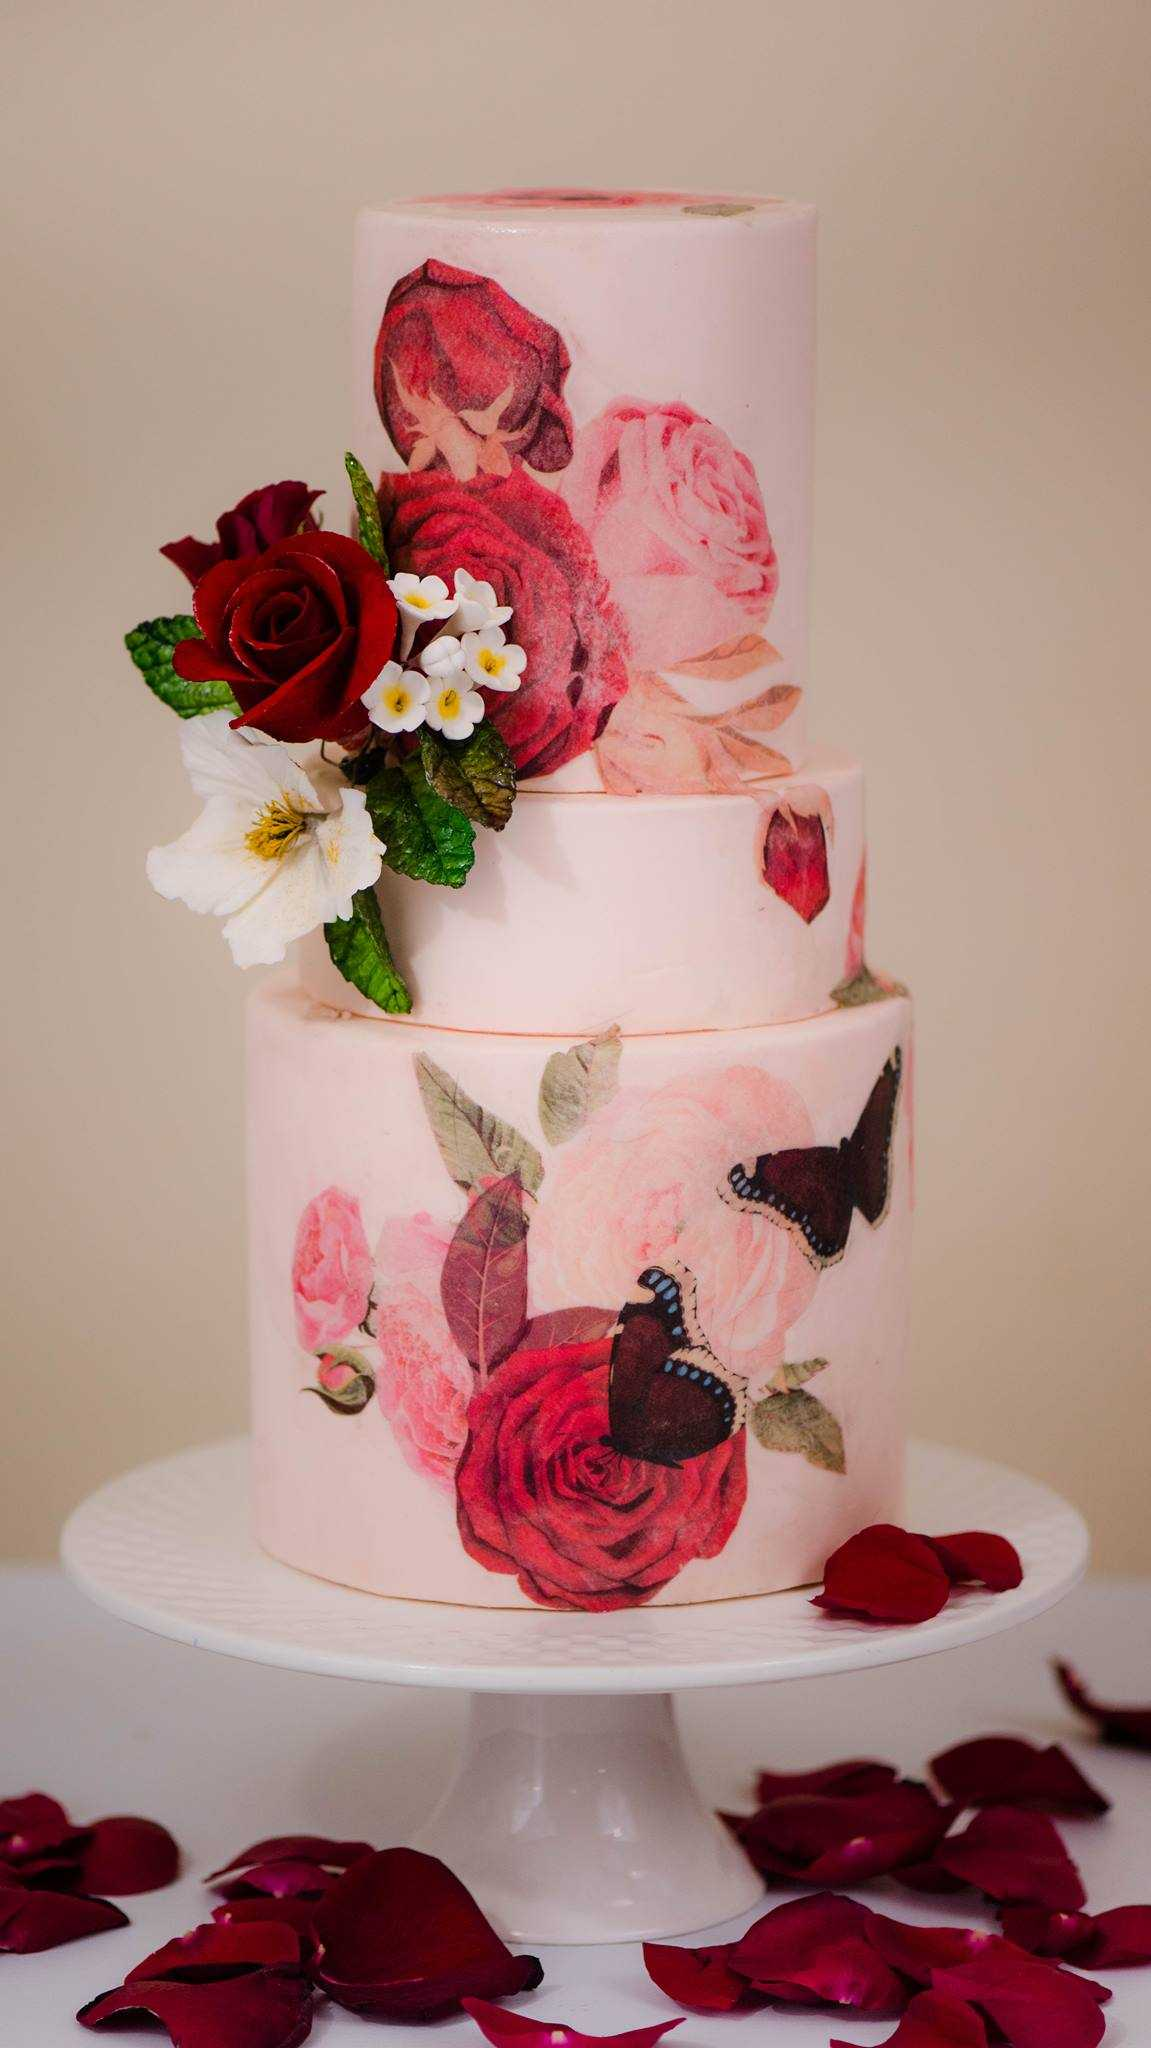 Baby pink wedding cake with hand painted pink flowers